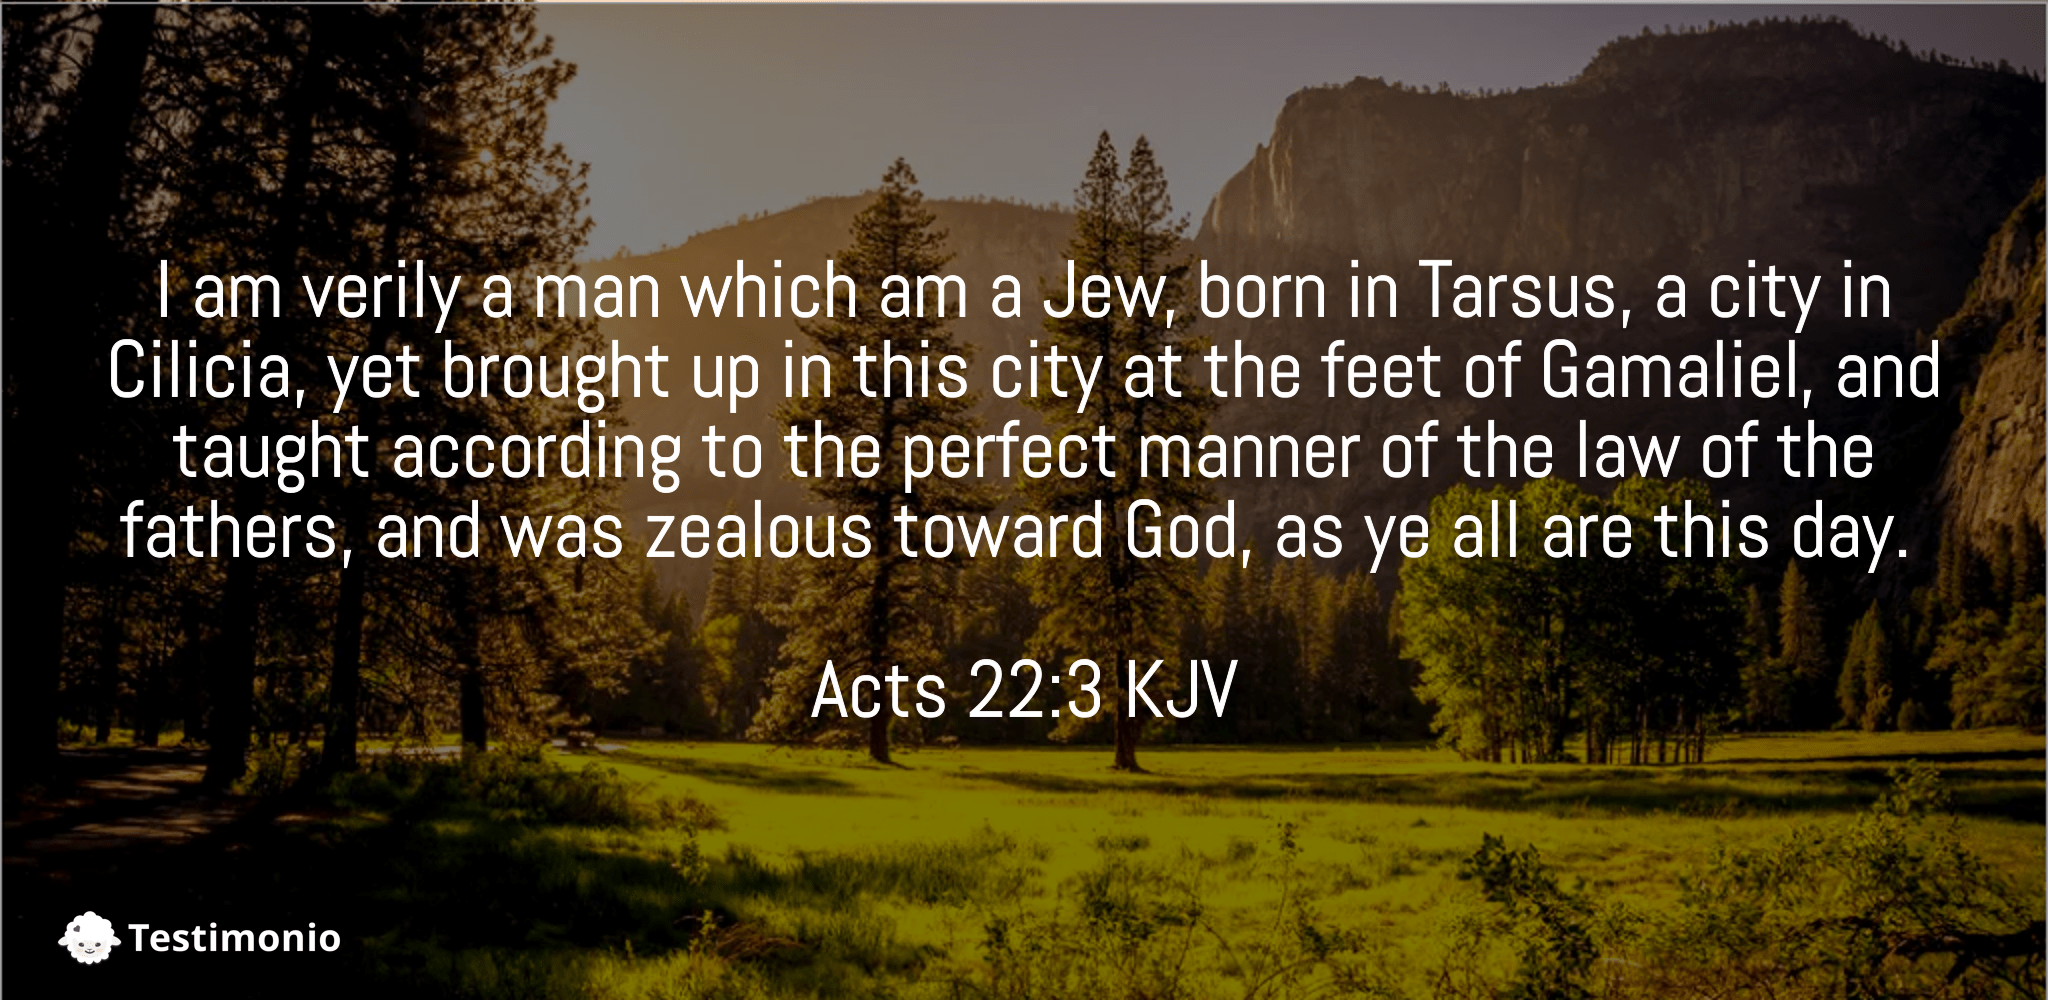 Acts 22:3